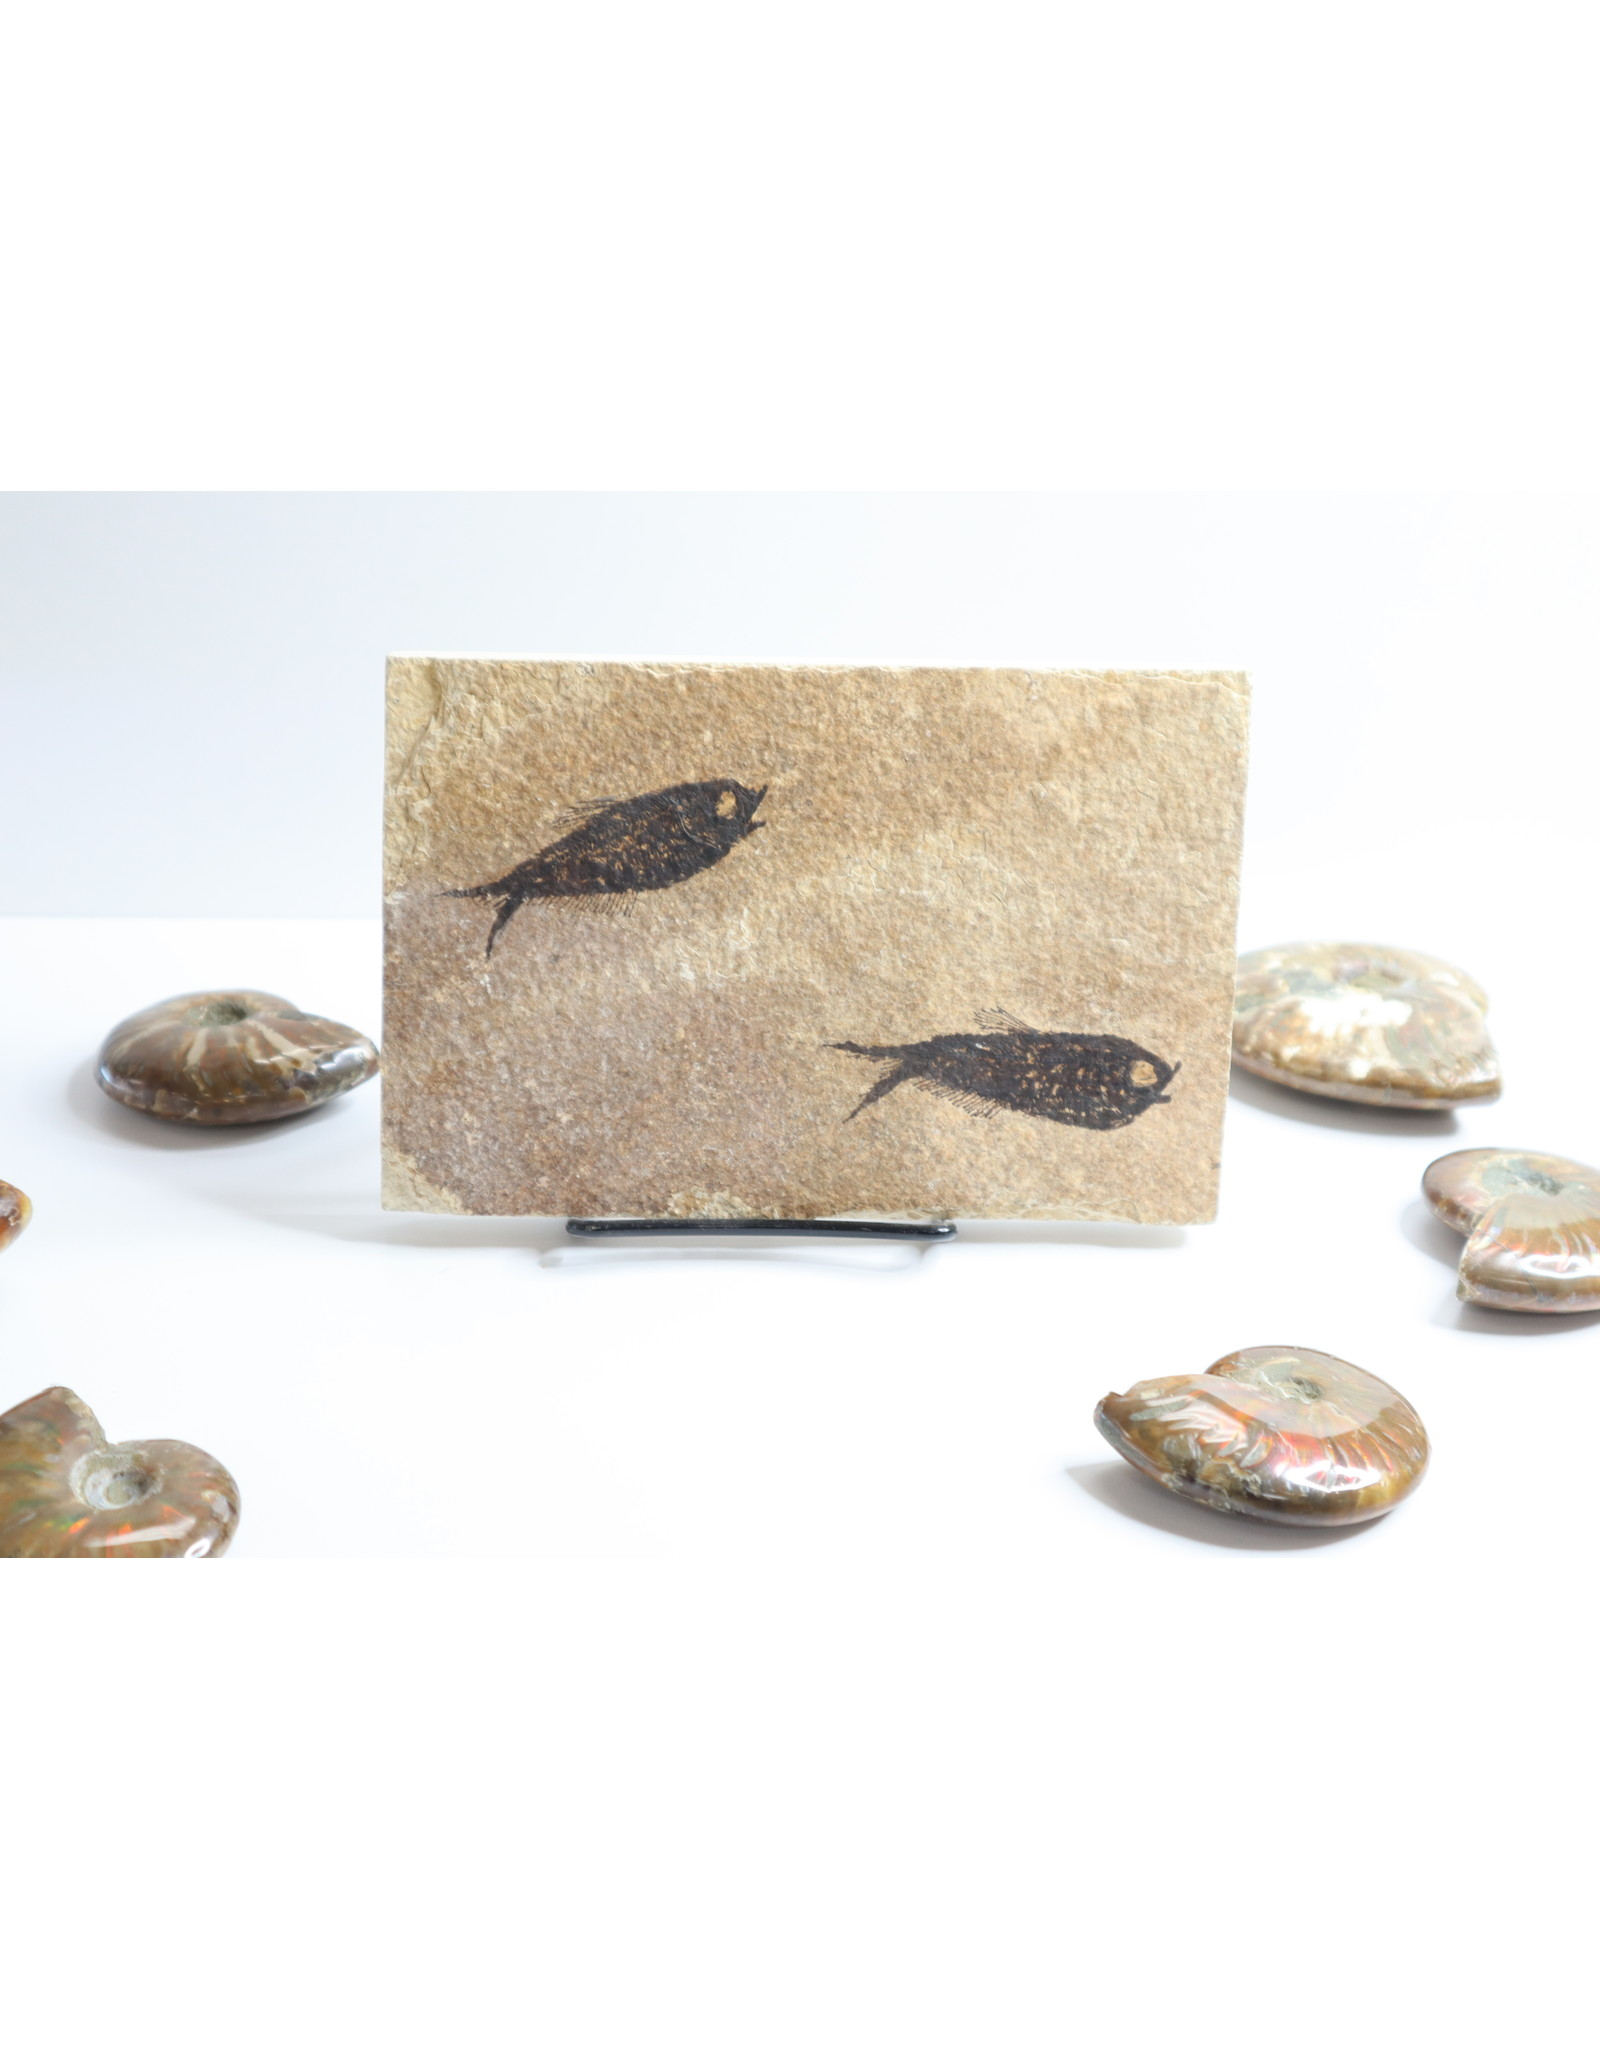 Fossilized Fish #7